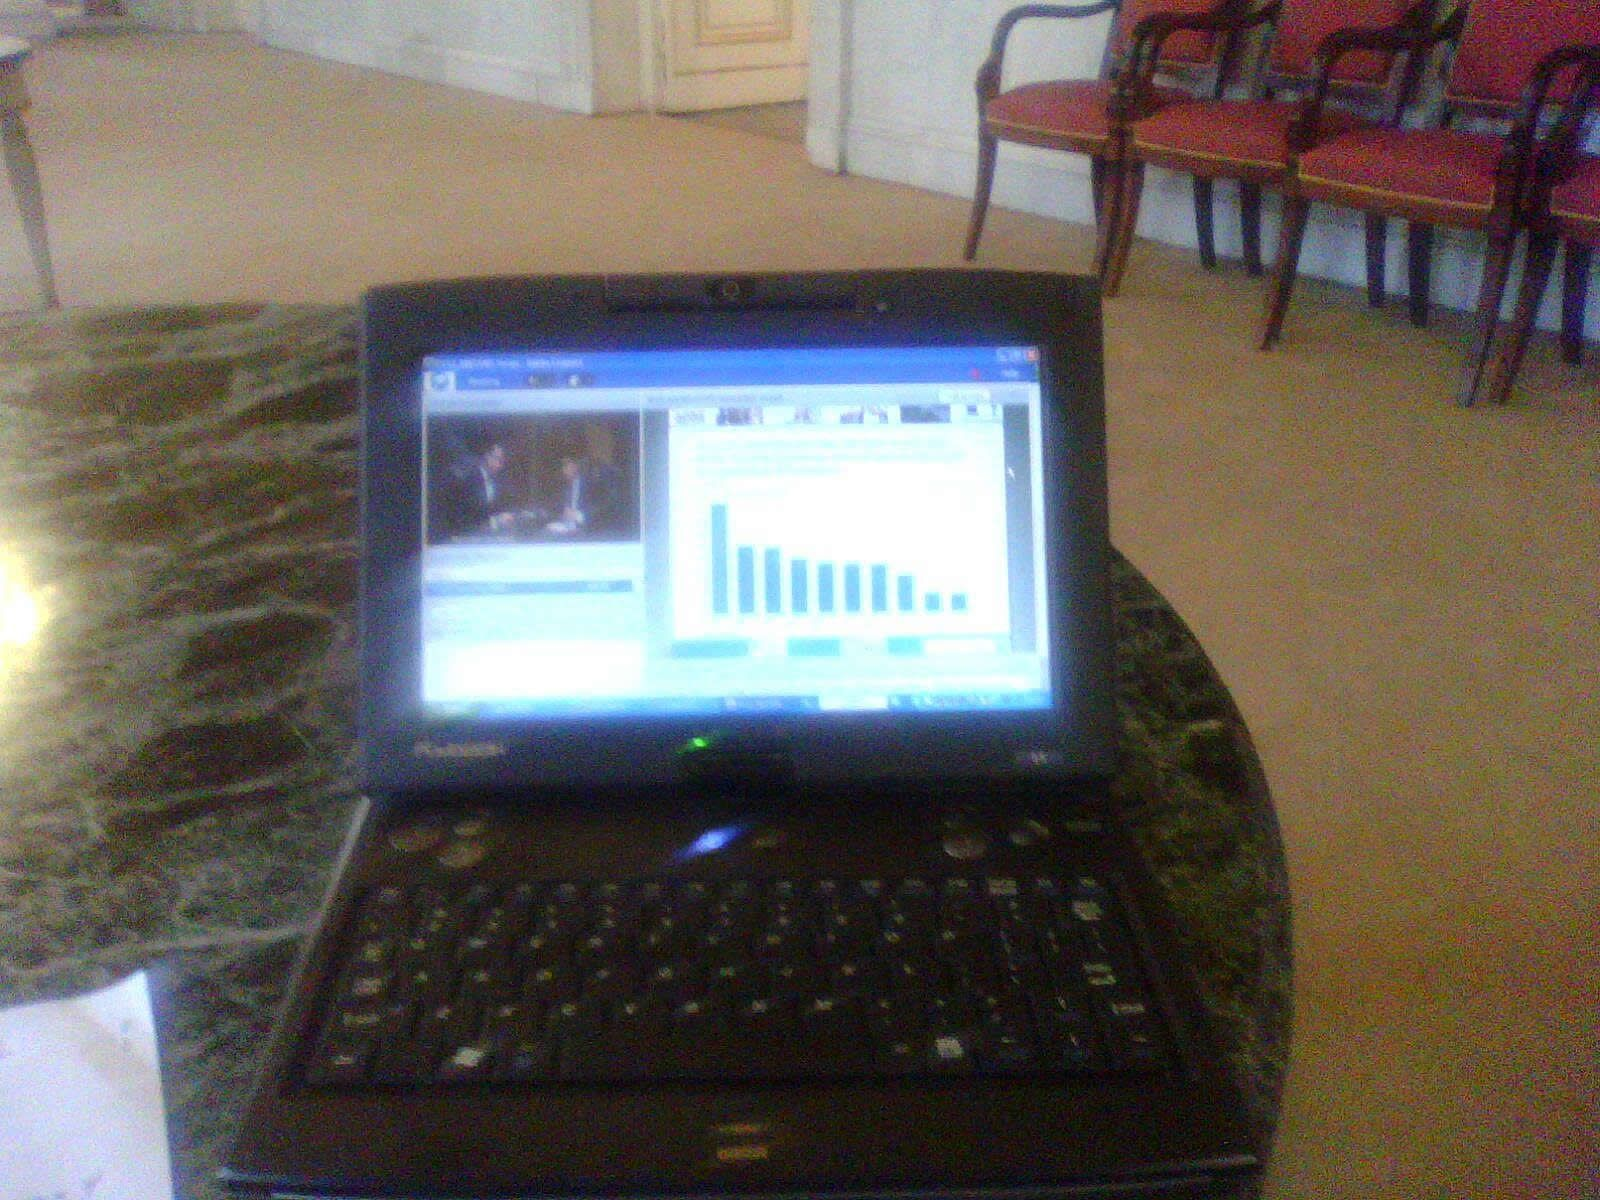 ICT progress: participating the webcast on European labour market perspectives during the symposium